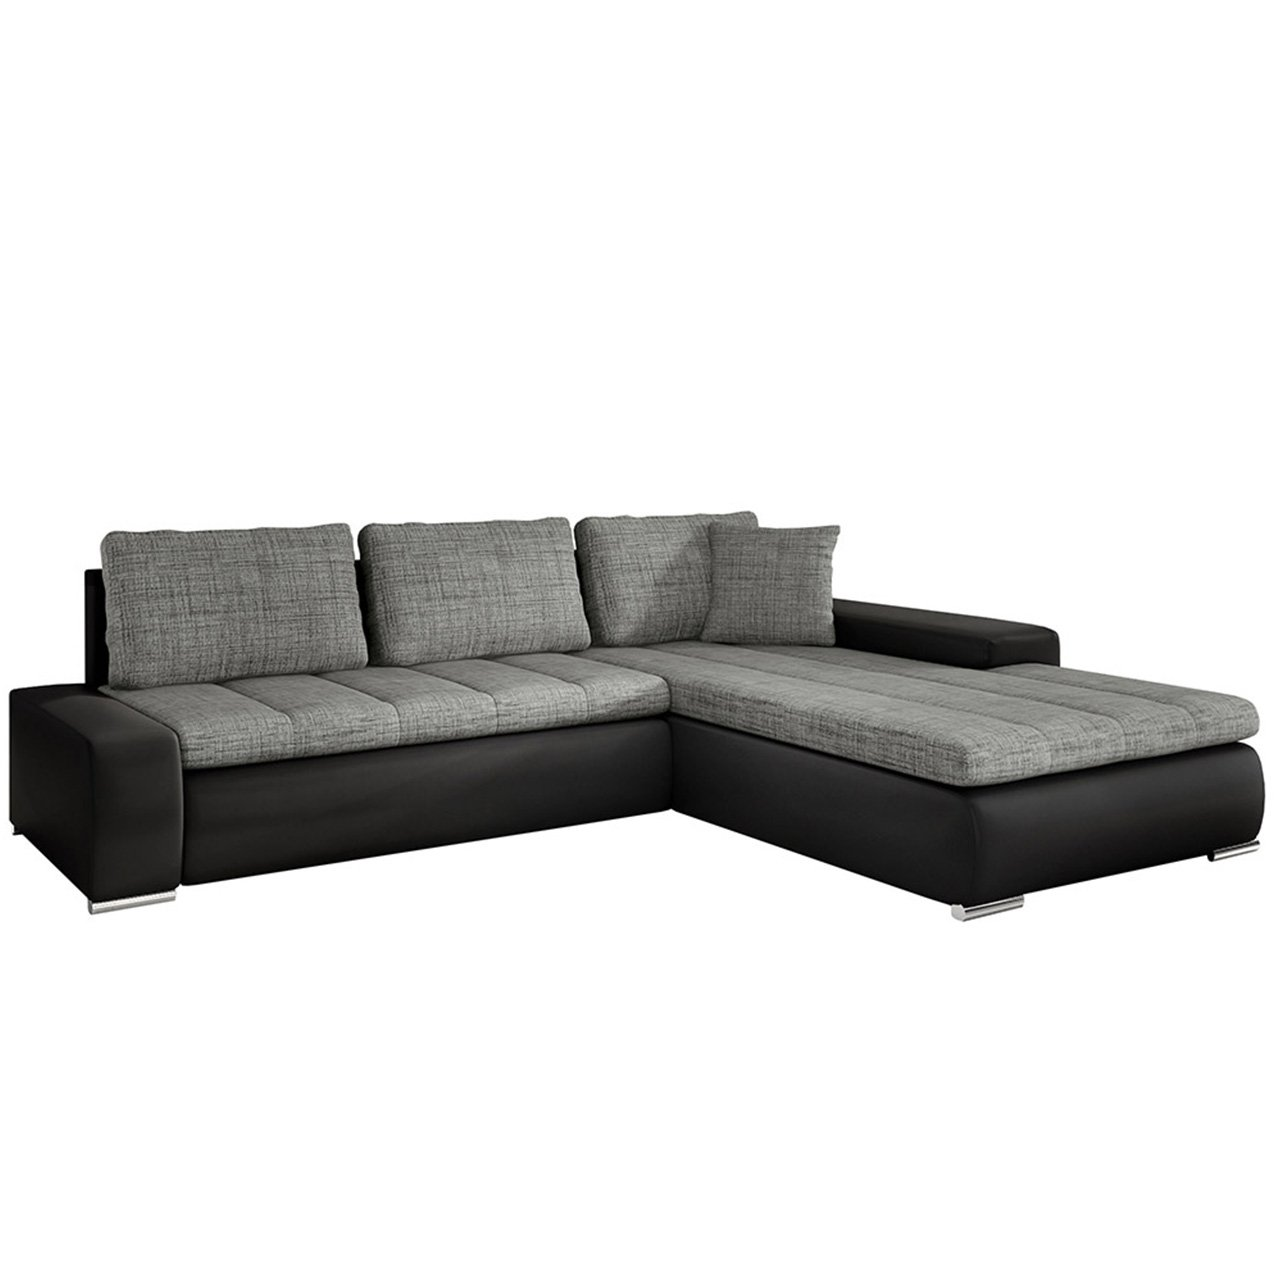 eckcouch ecksofa orkan loft elegante sofa mit. Black Bedroom Furniture Sets. Home Design Ideas